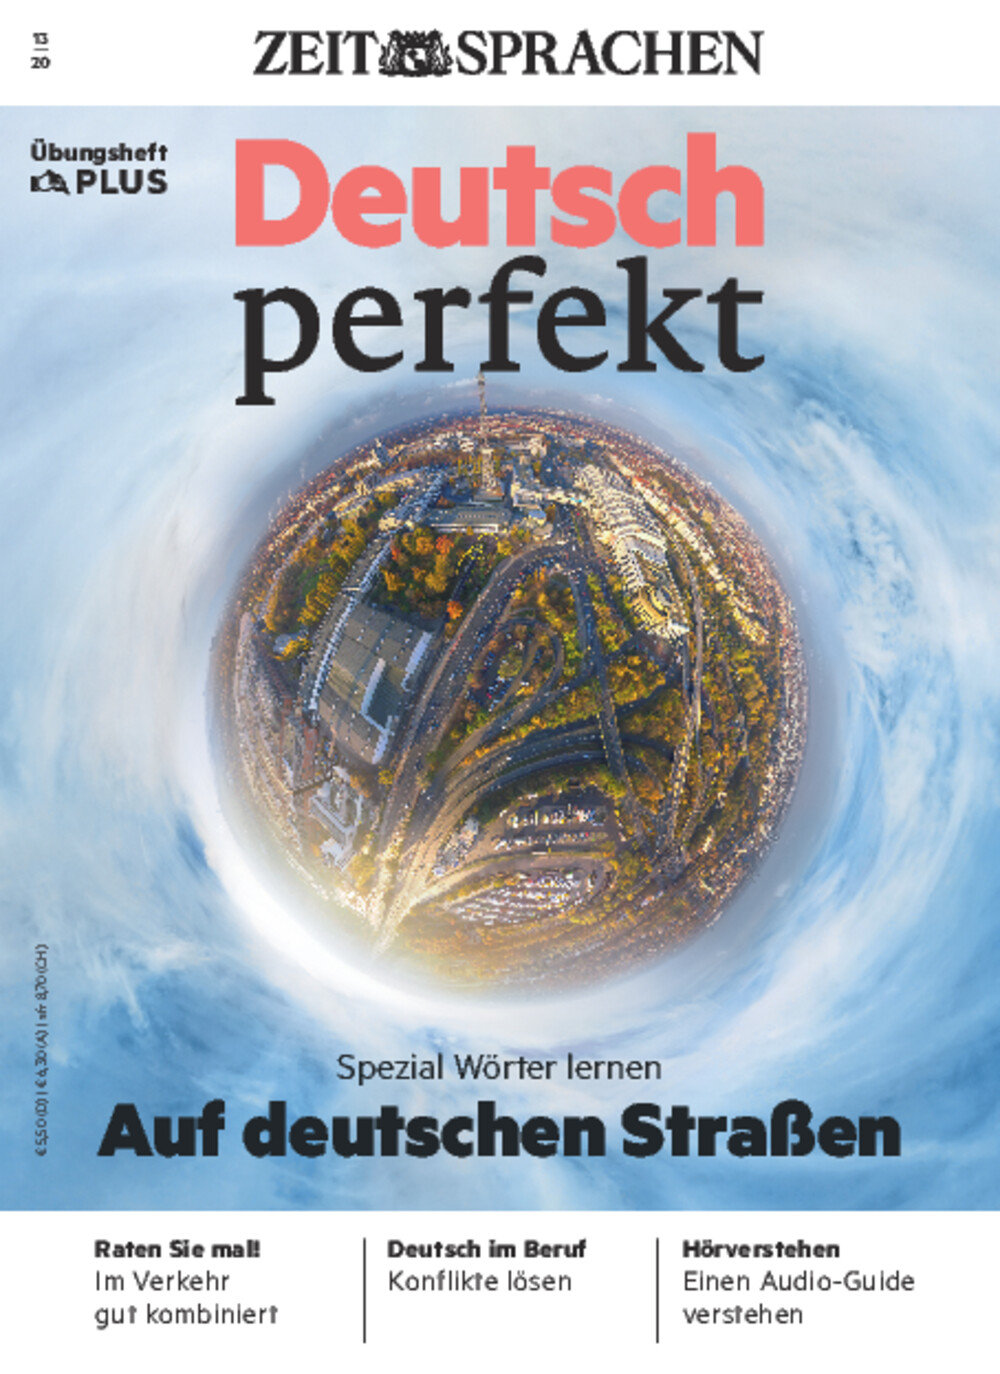 Deutsch perfekt PLUS 13/2020